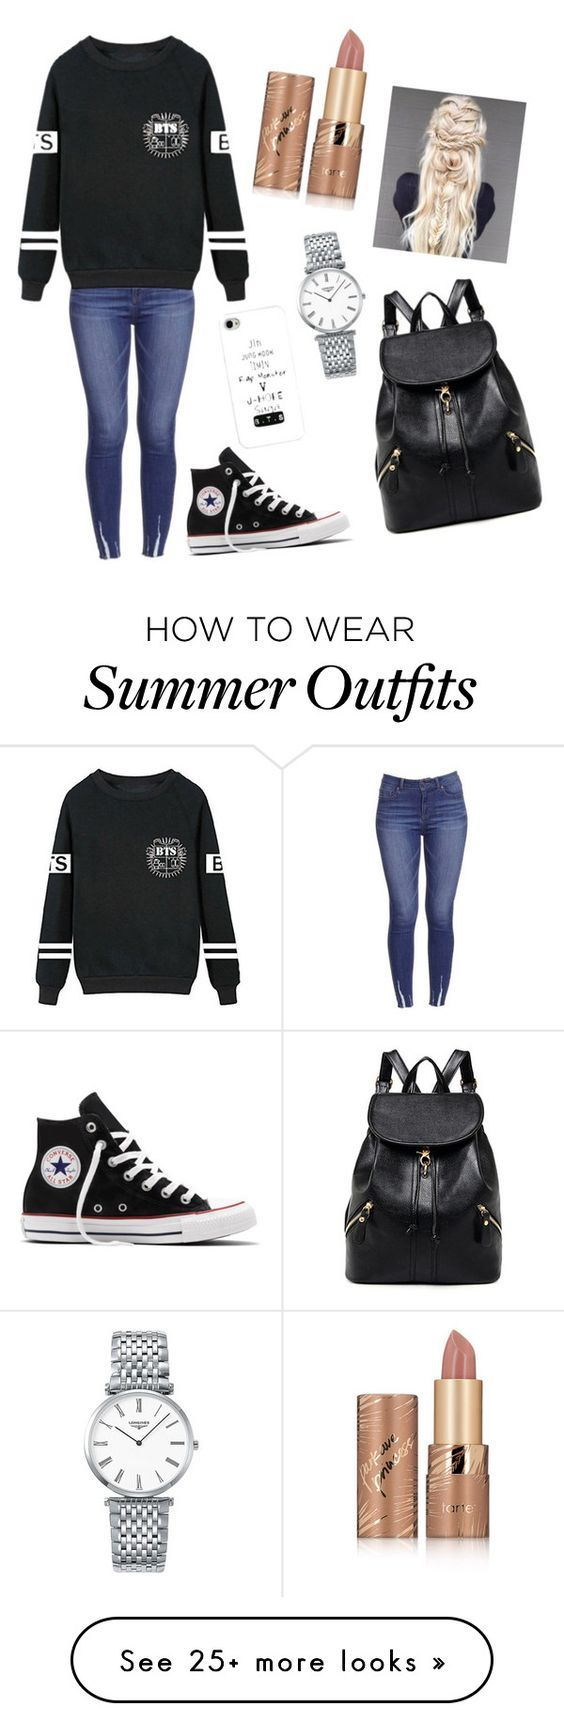 """""""Army Outfit ❤️Bts"""" by celia-ferreira-1 on Polyvore featuring Converse, Longines, tarte, outfit and bts"""